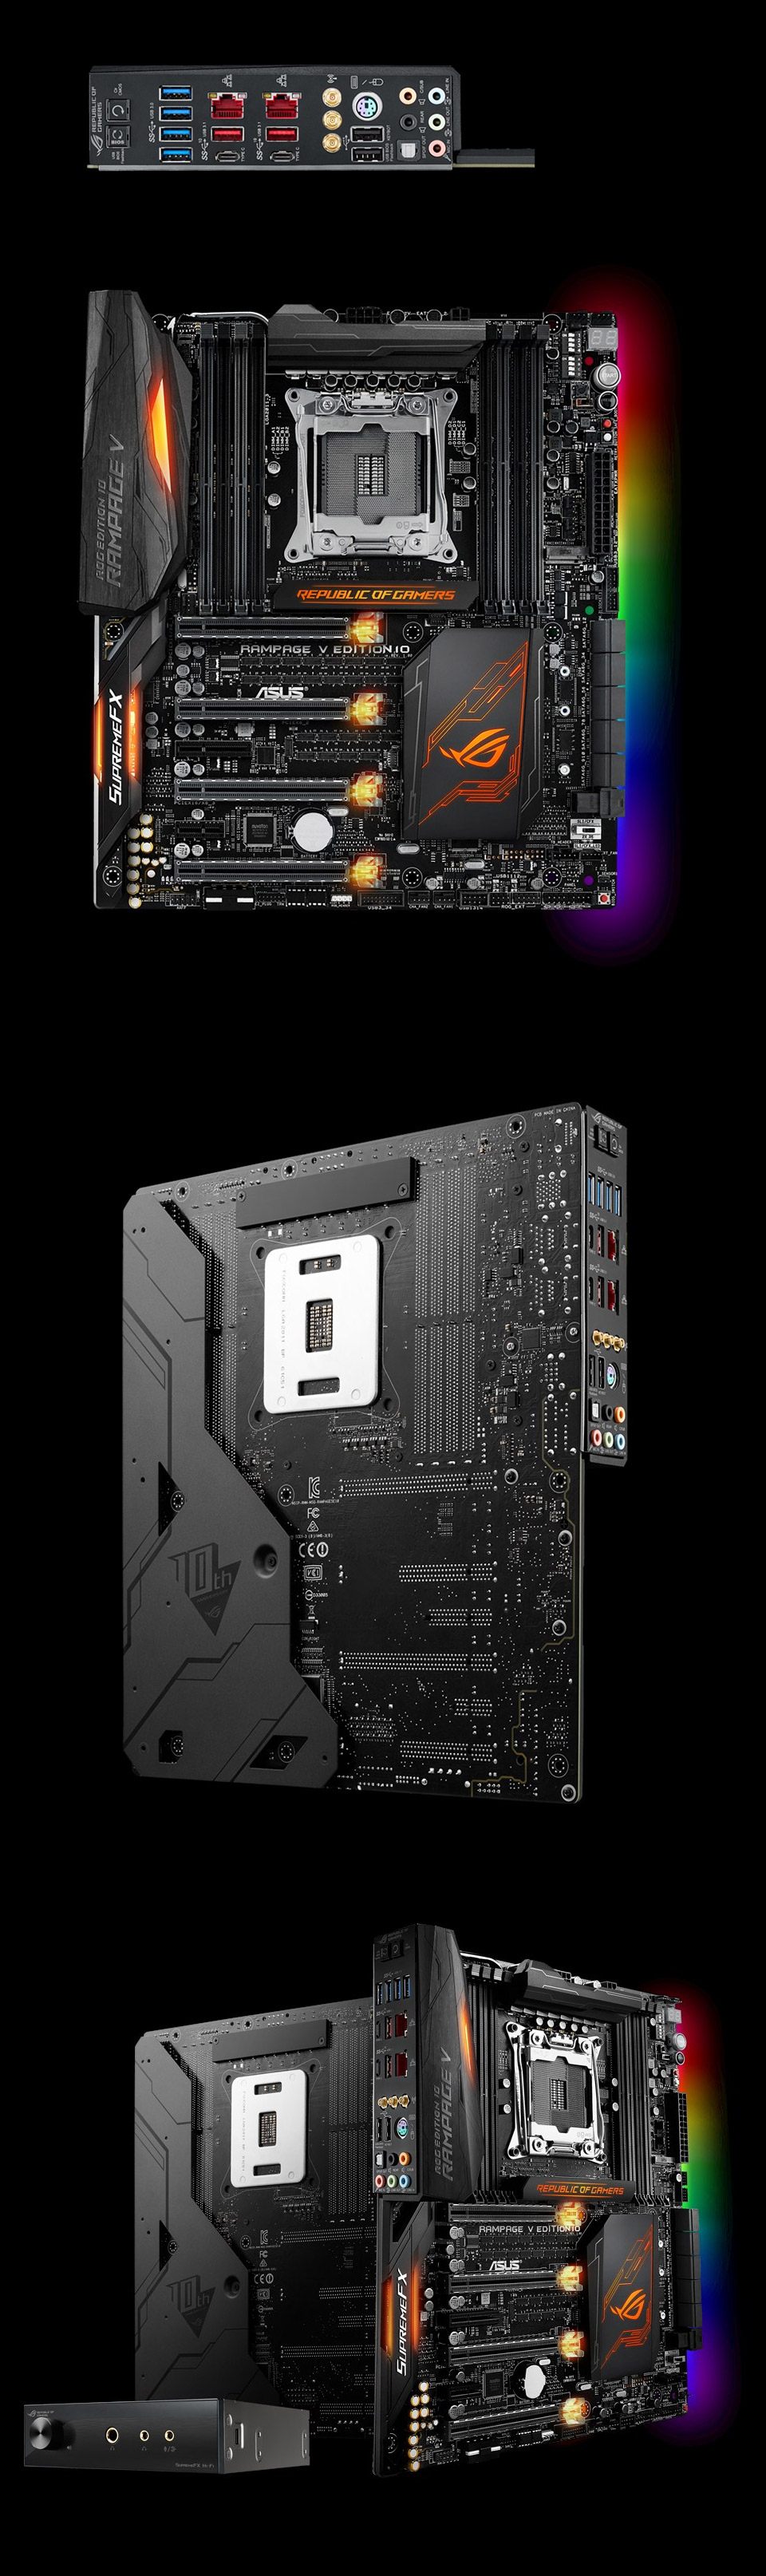 Asus Rog Rampage V Edition 10 Pc Case Gear Motherboard Try Watching This Video On Youtubecom Or Enable Javascript If It Is Disabled In Your Browser